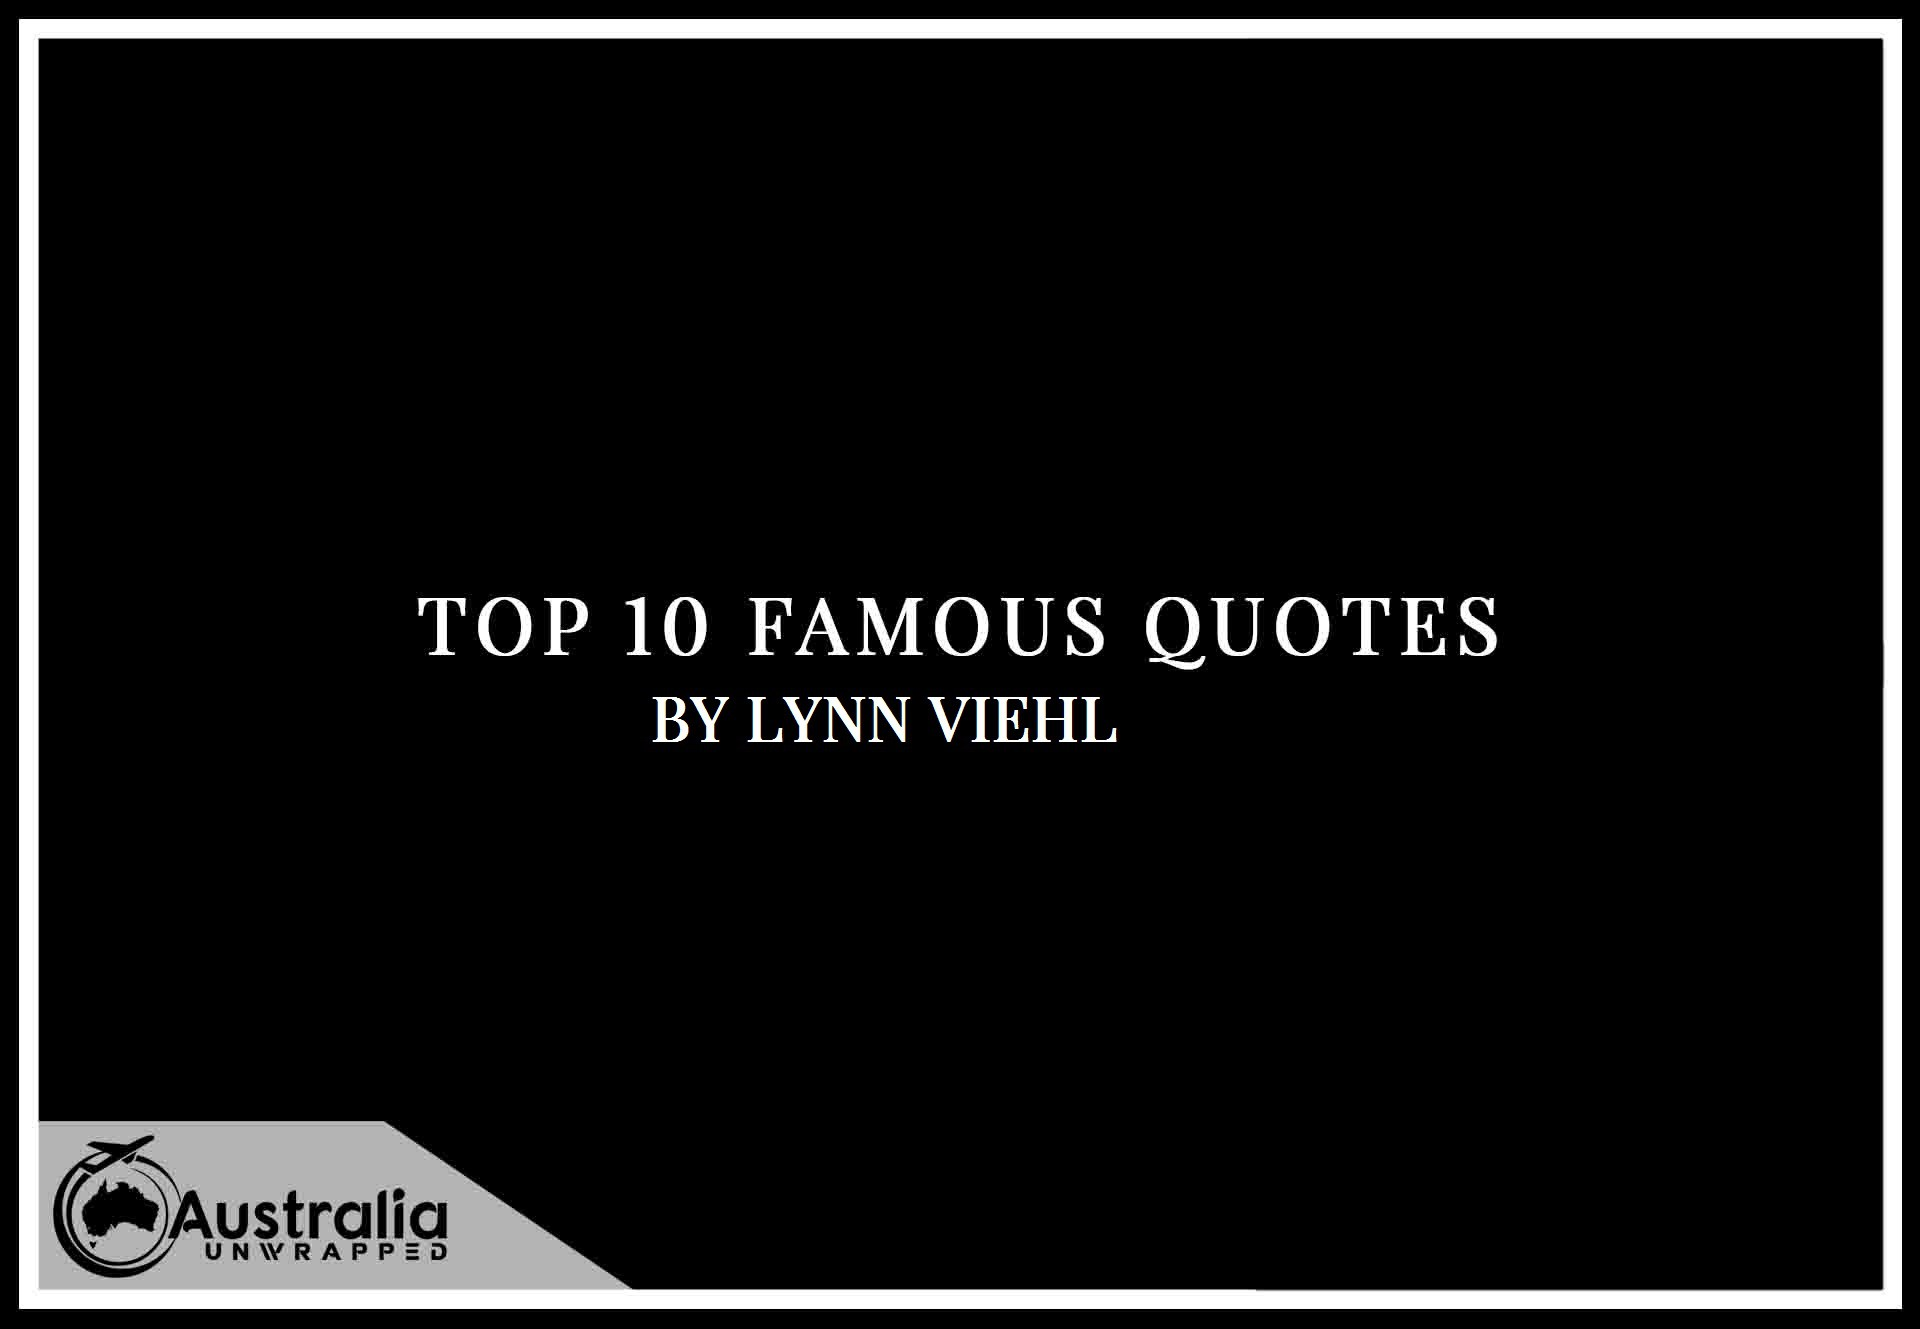 Lynn Viehl's Top 10 Popular and Famous Quotes